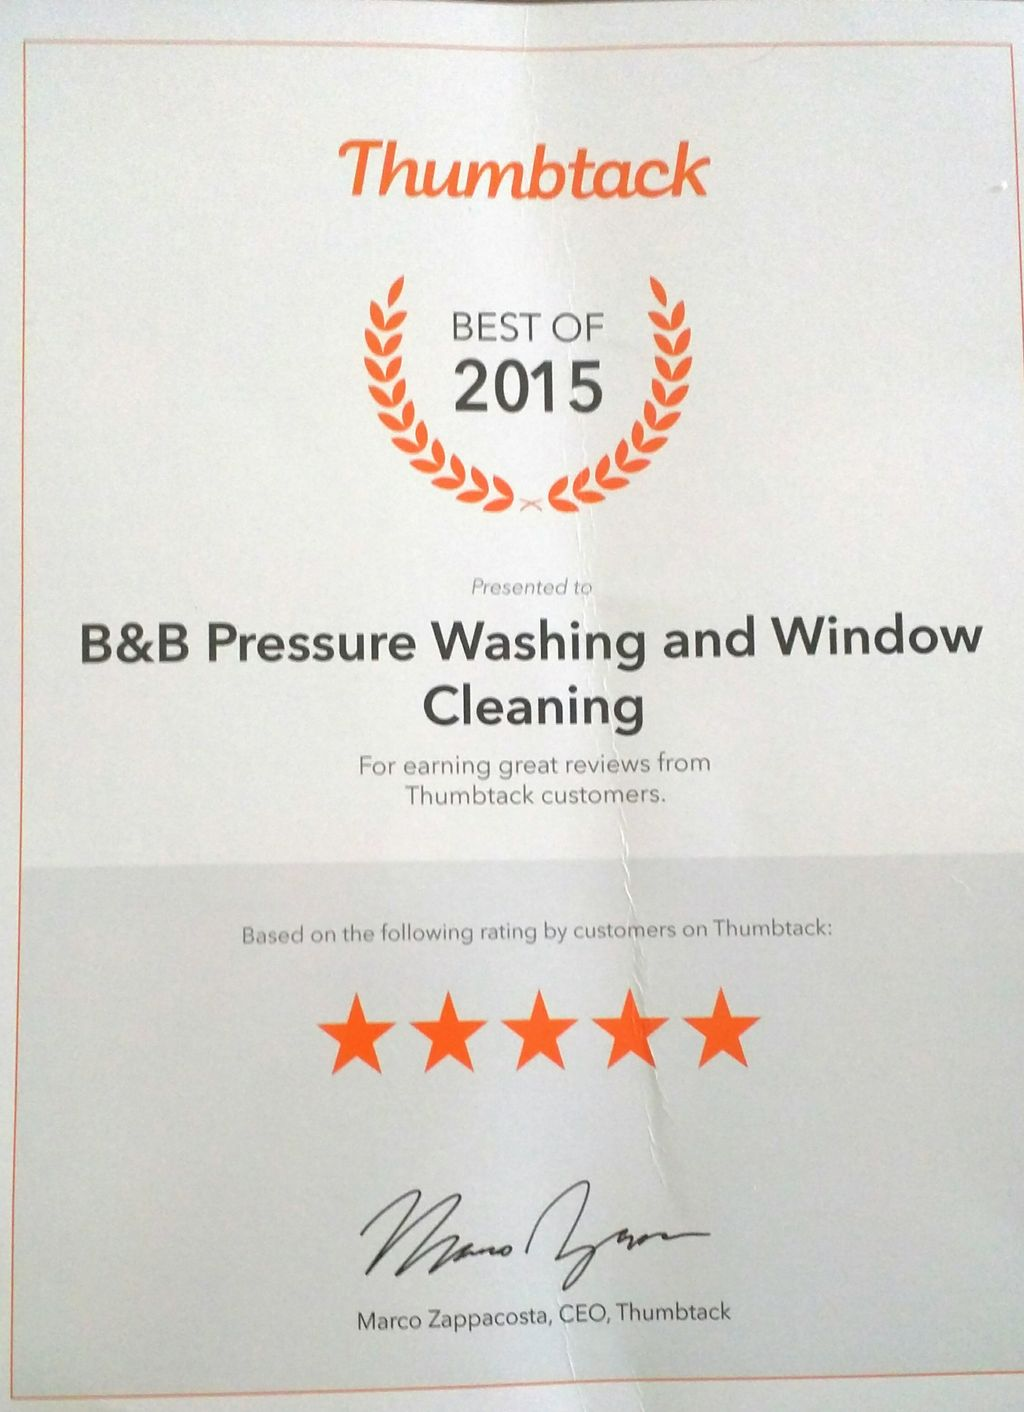 B&B Pressure Washing and Window Cleaning